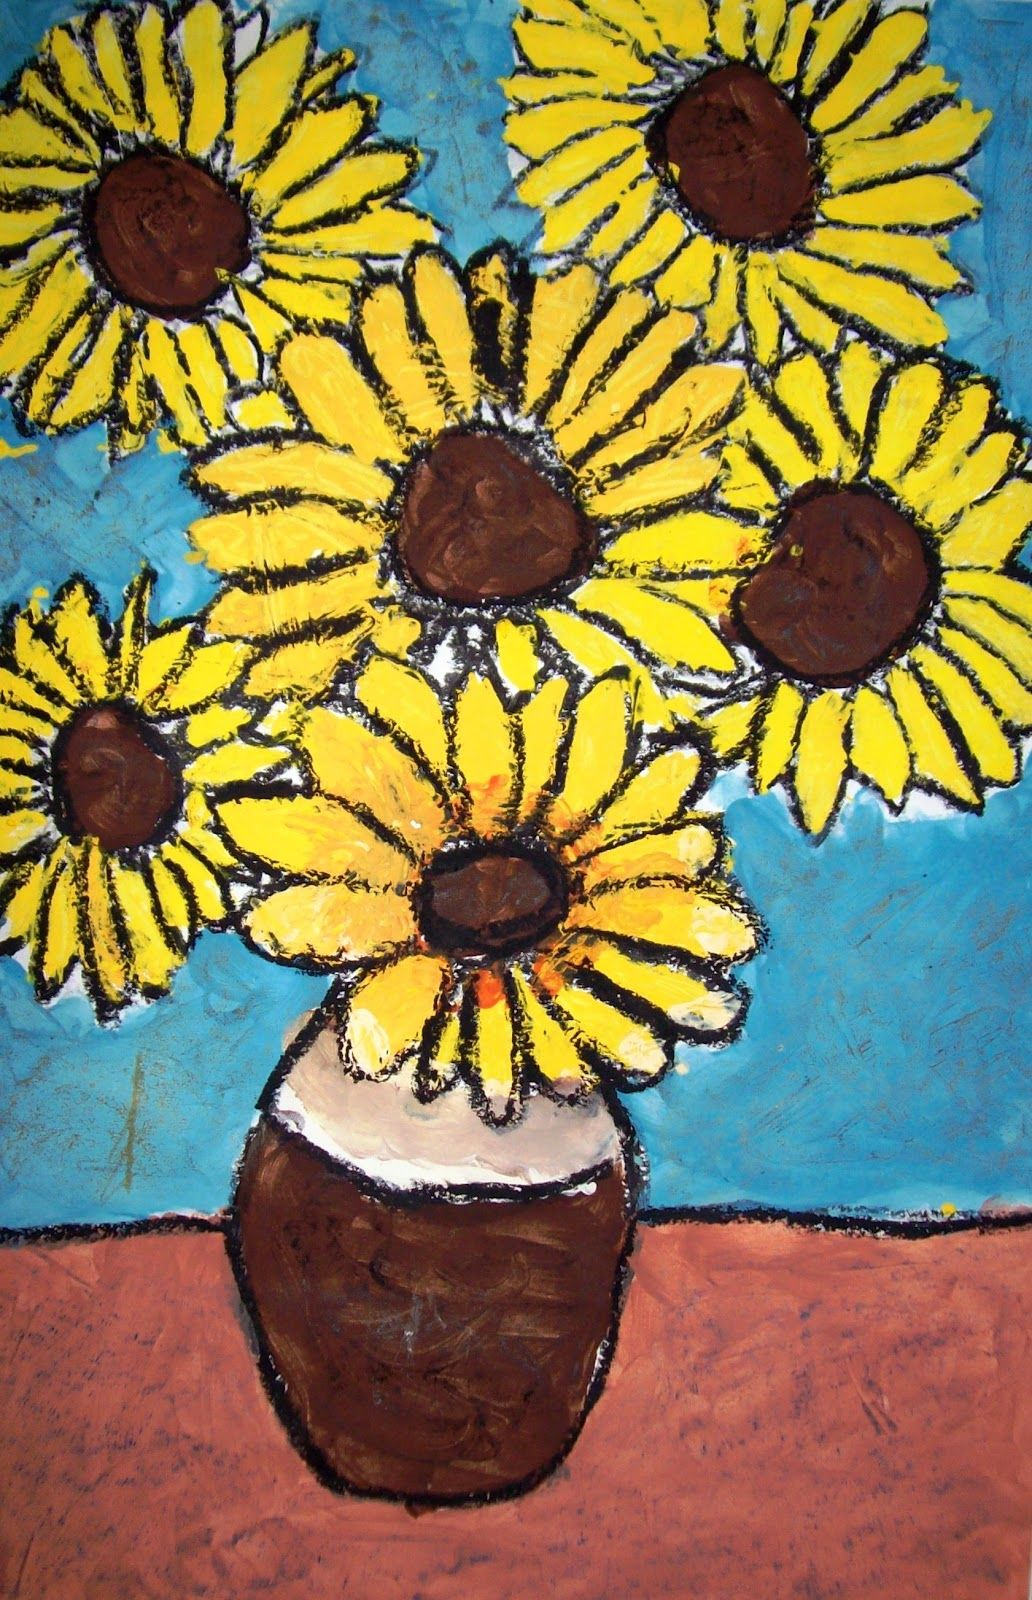 Textured Sunflowers She Had The Students Draw Outlines With Black Crayon Then Paint Using